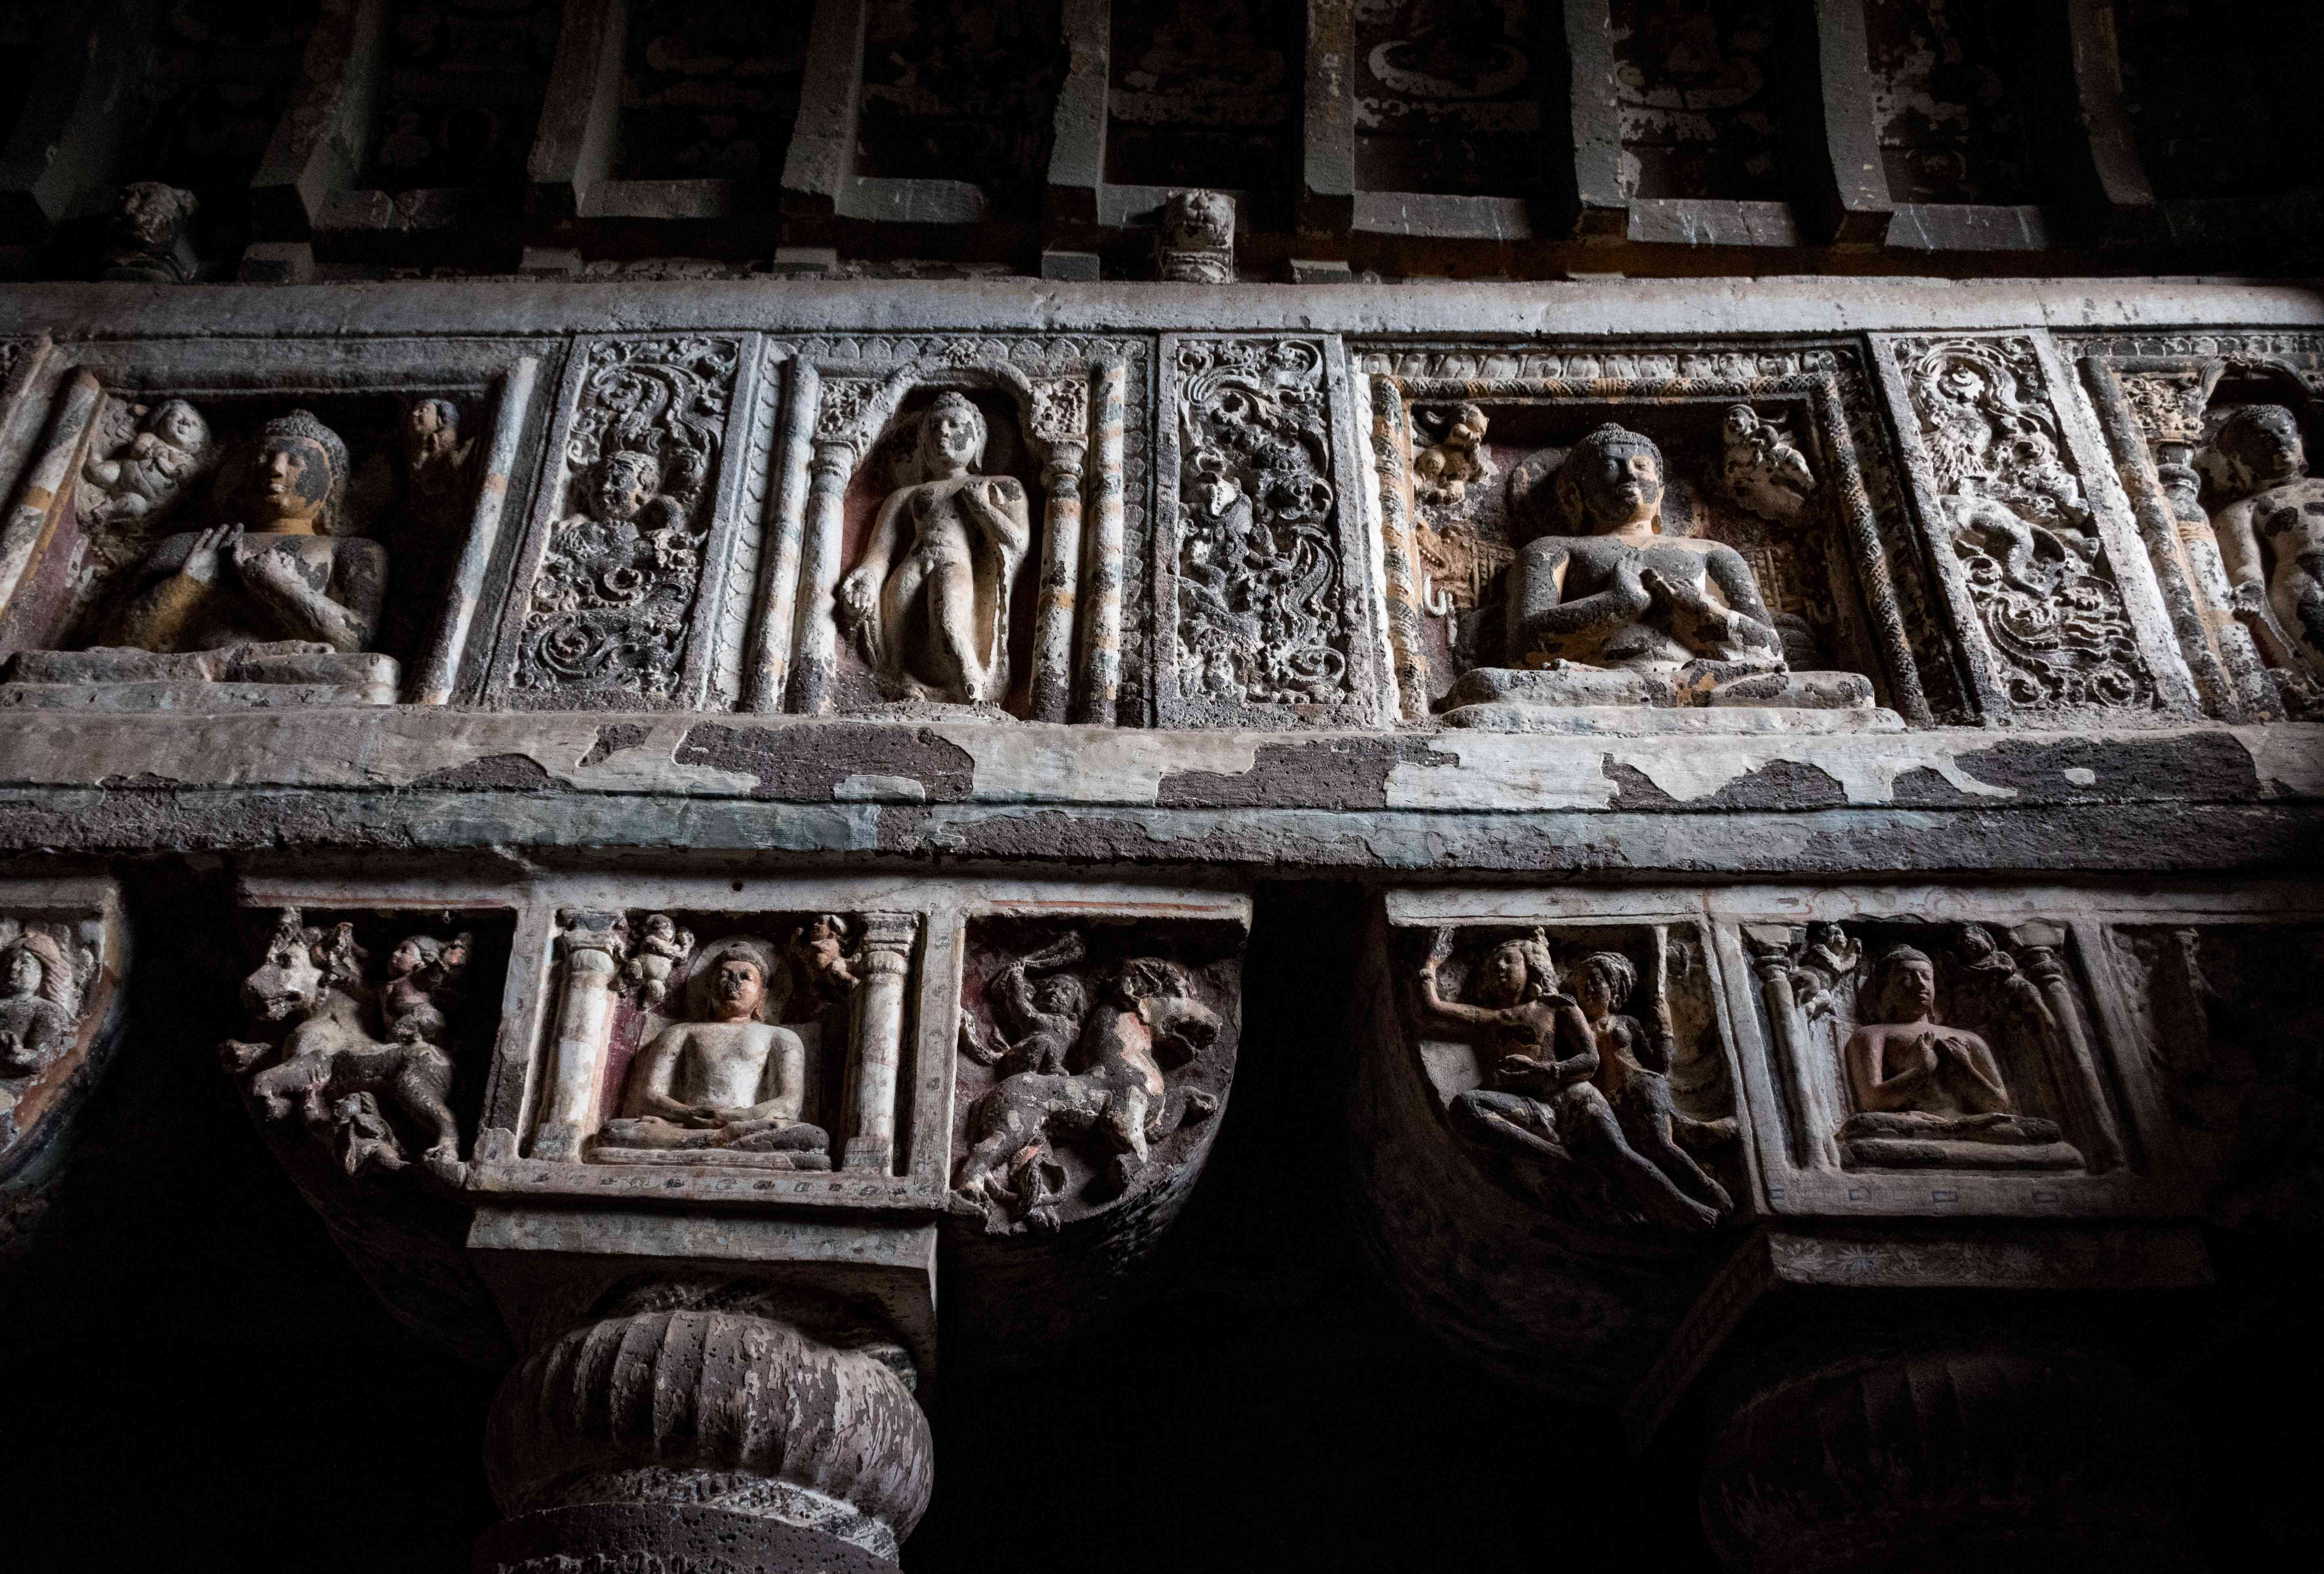 Ornamental carvings in the caves